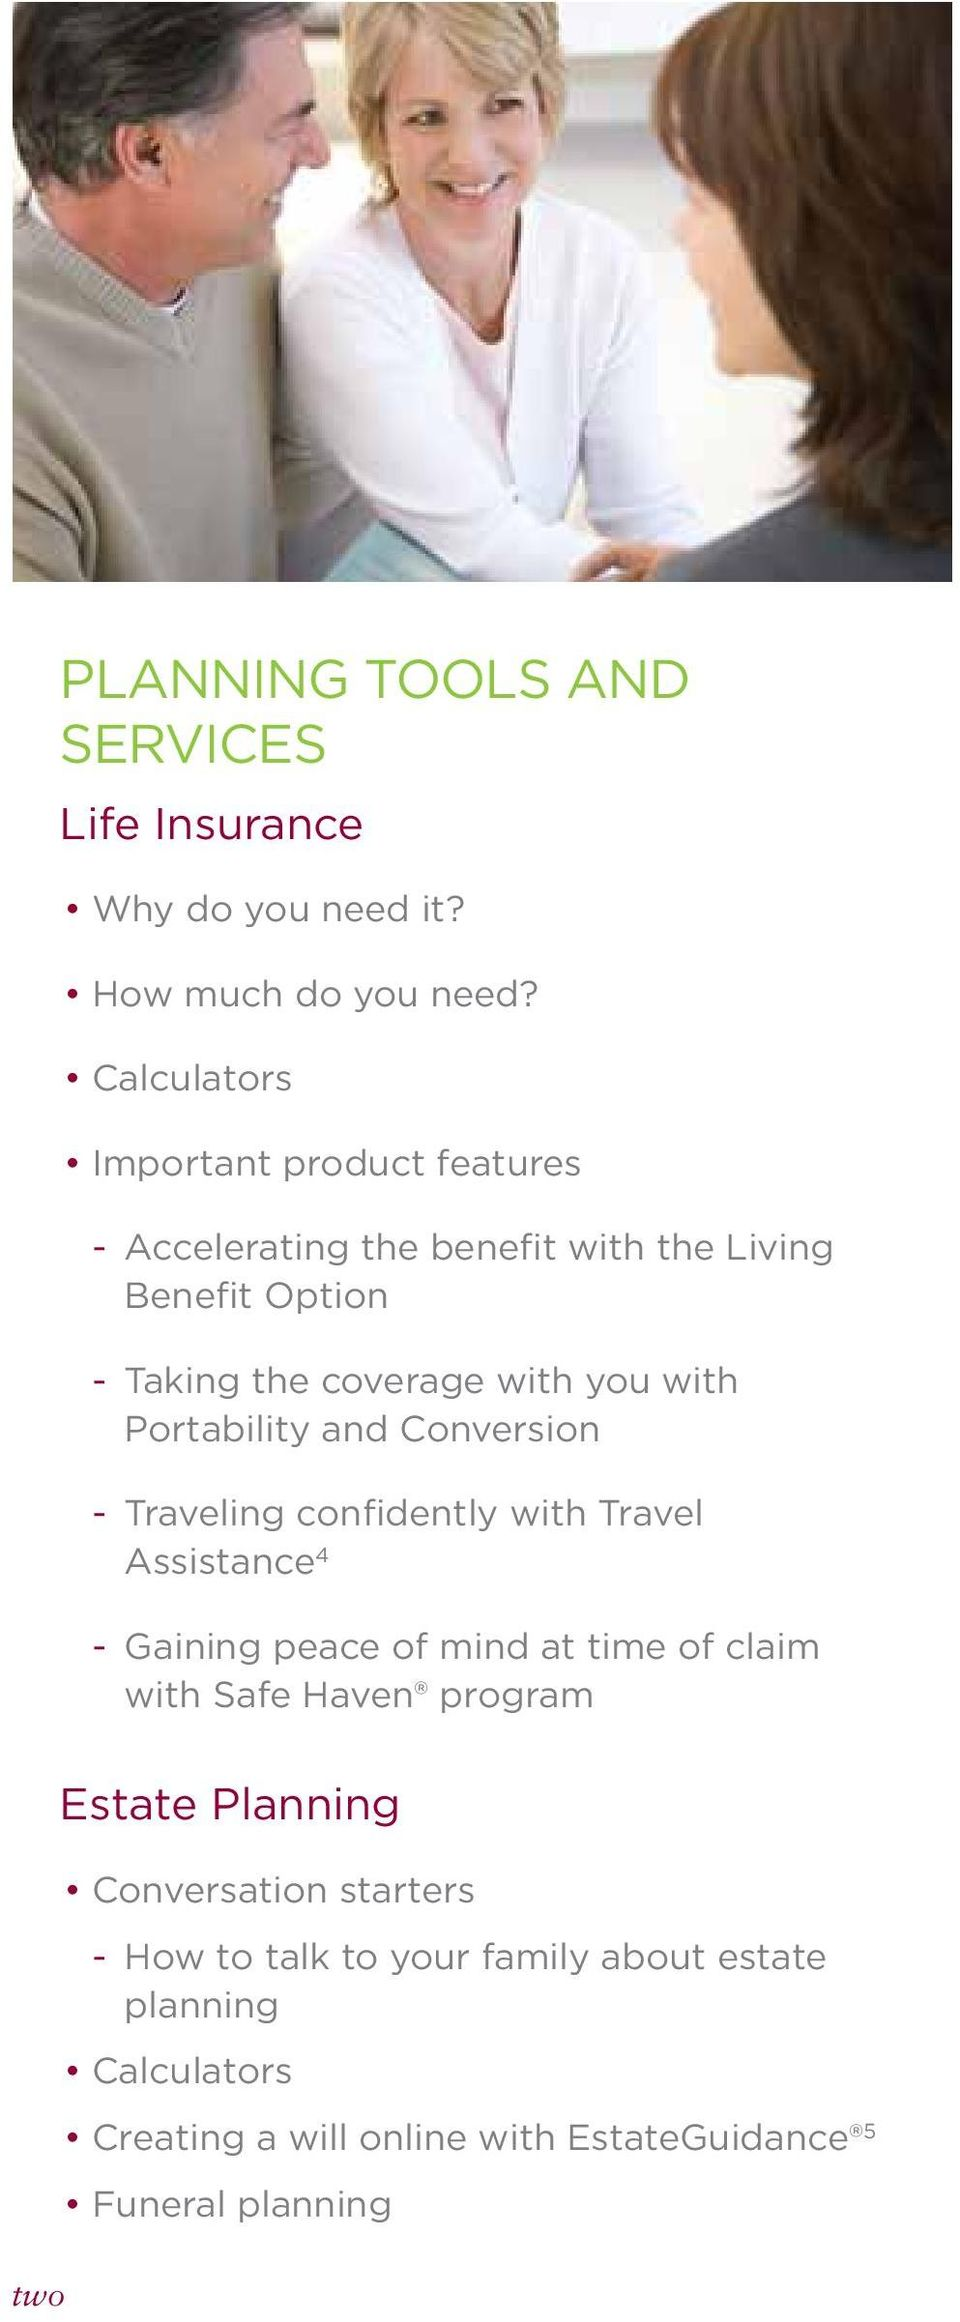 with Portability and Conversion - Traveling confidently with Travel Assistance 4 - Gaining peace of mind at time of claim with Safe